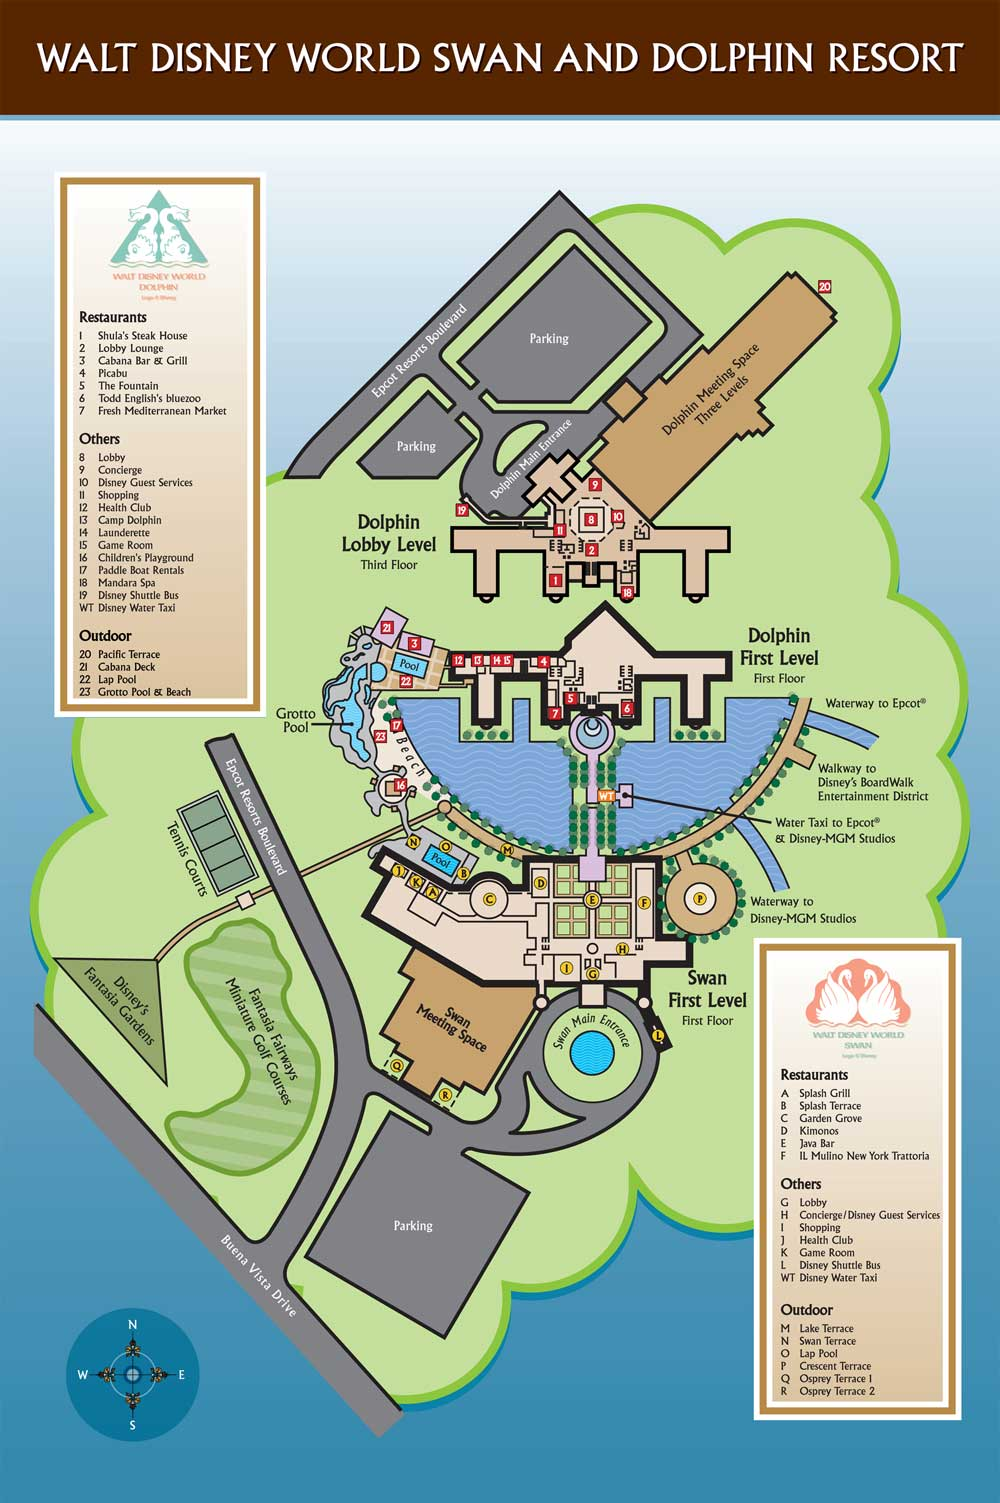 Stunning Disney World Swan and Dolphin Resort Map 1000 x 1503 · 166 kB · jpeg